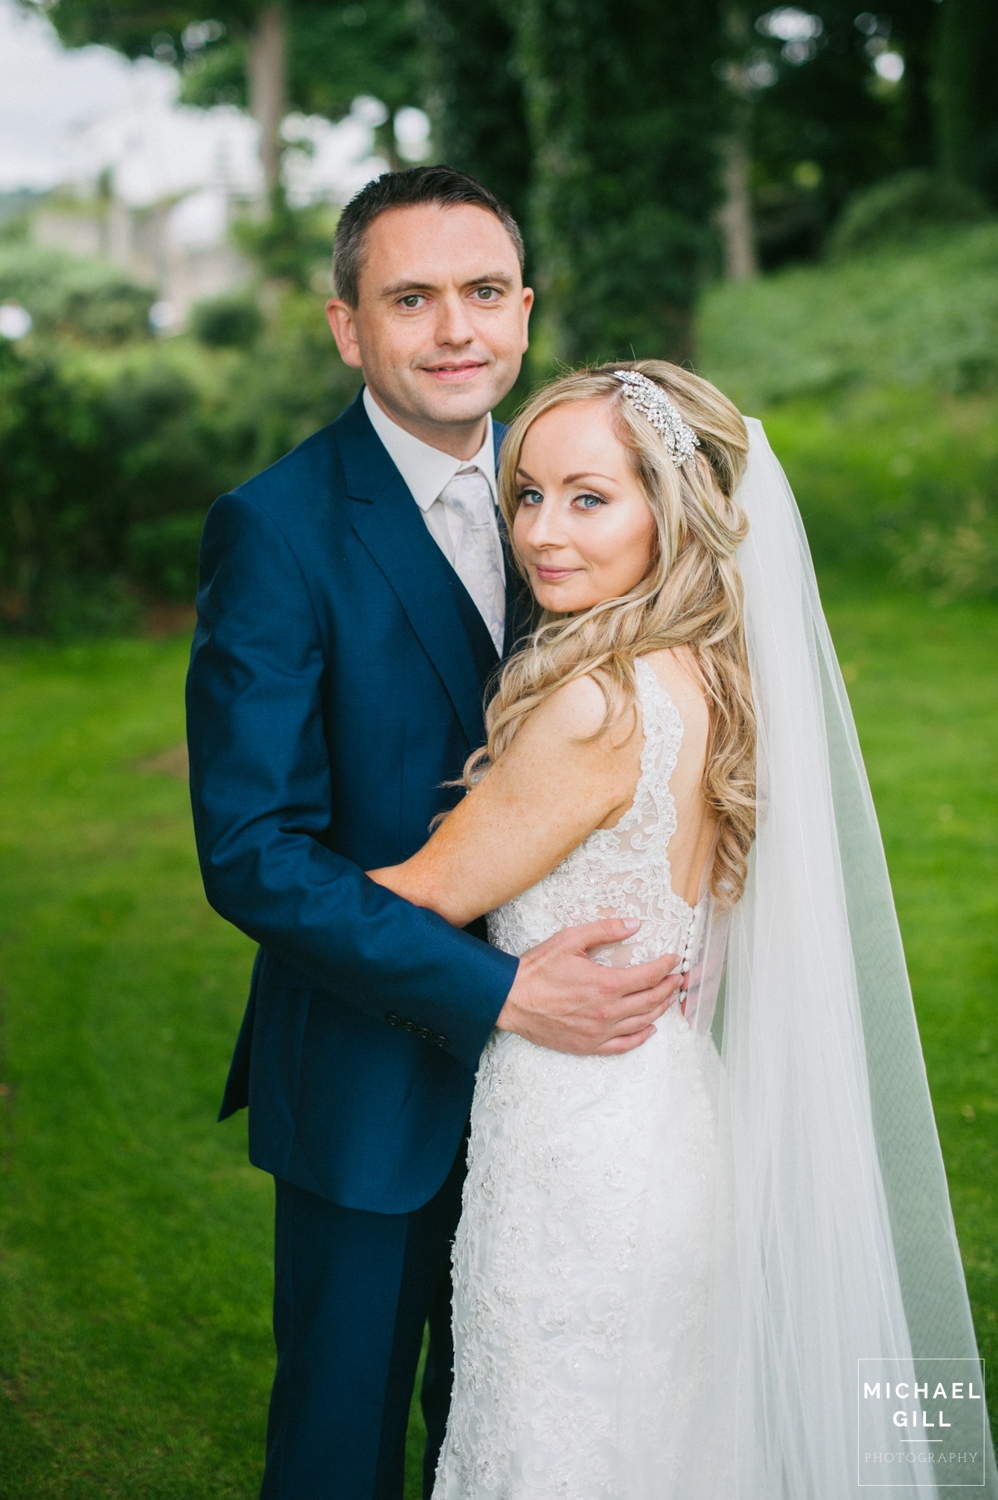 Michael_Gill_Photography_Redcastle_Hotel_ Wedding-3517.jpg